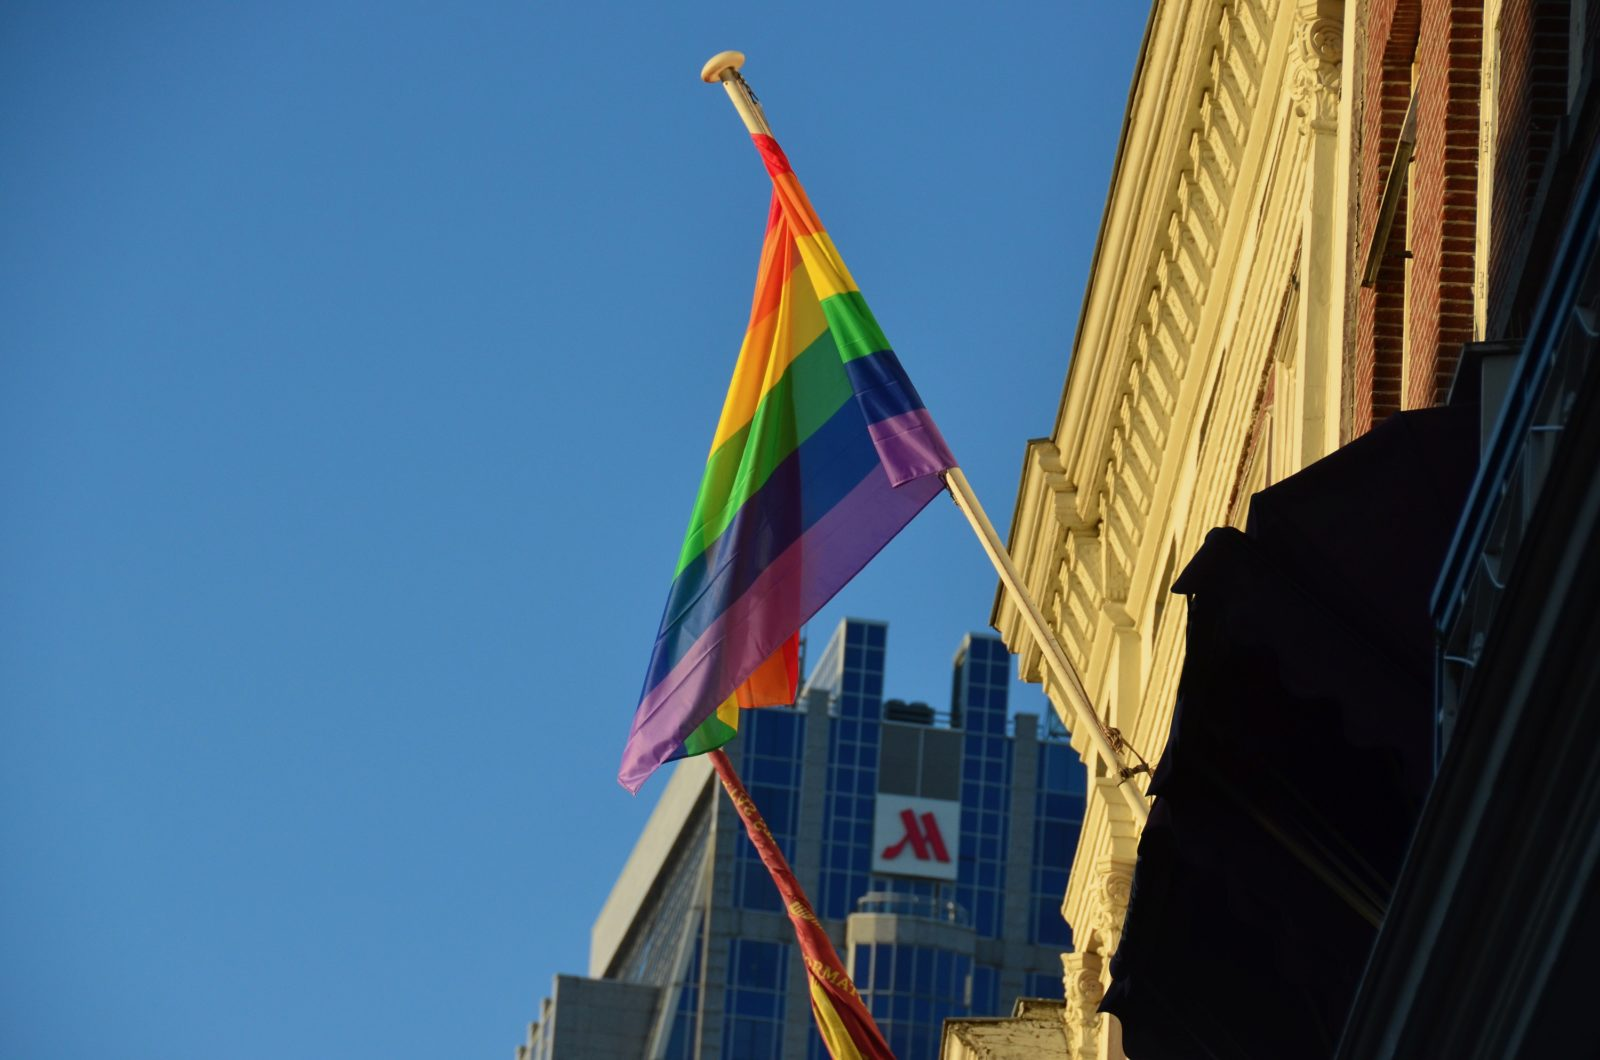 NSR will not fly rainbow flag during Rotterdam Pride event